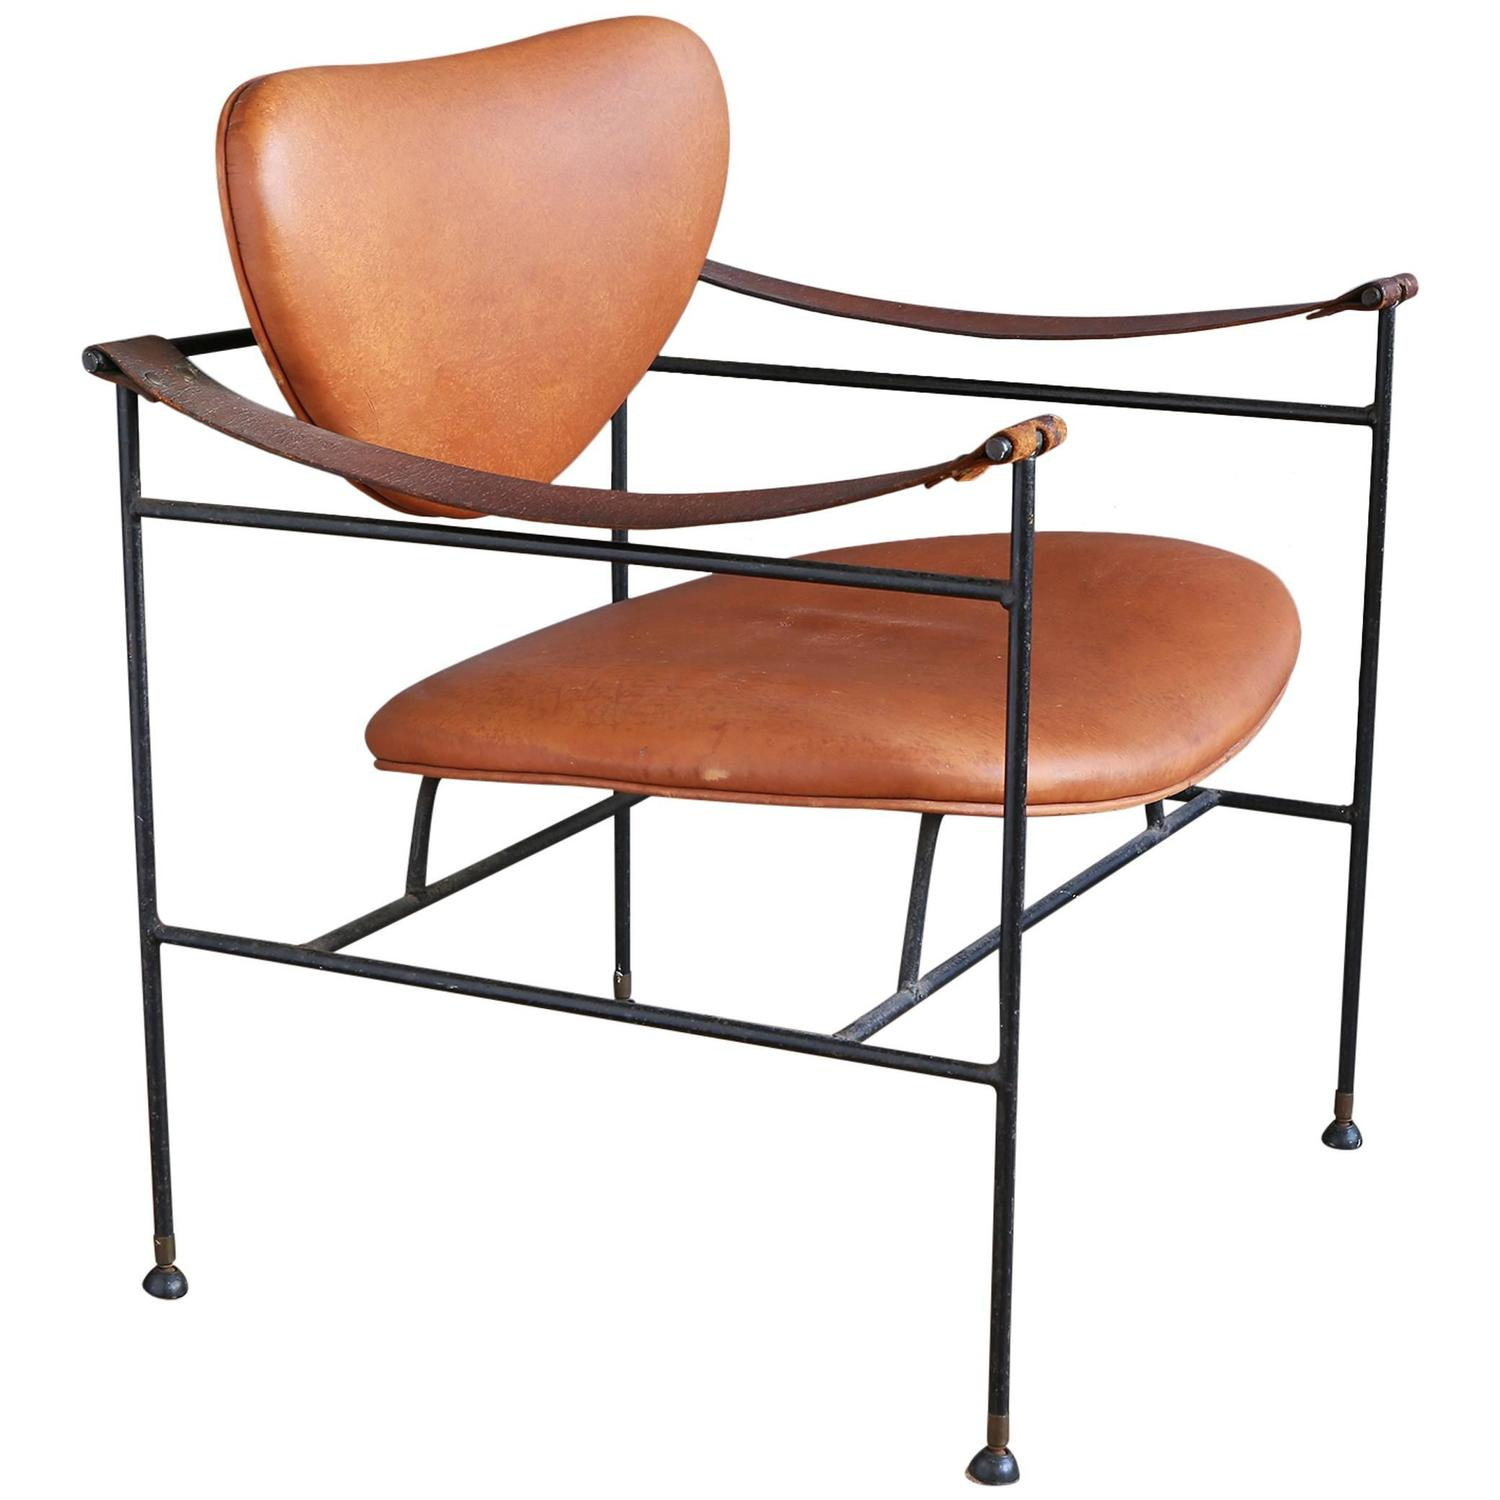 Wrought Iron and Leather Lounge Chair in the Style of Finn Juhl at 1stdibs